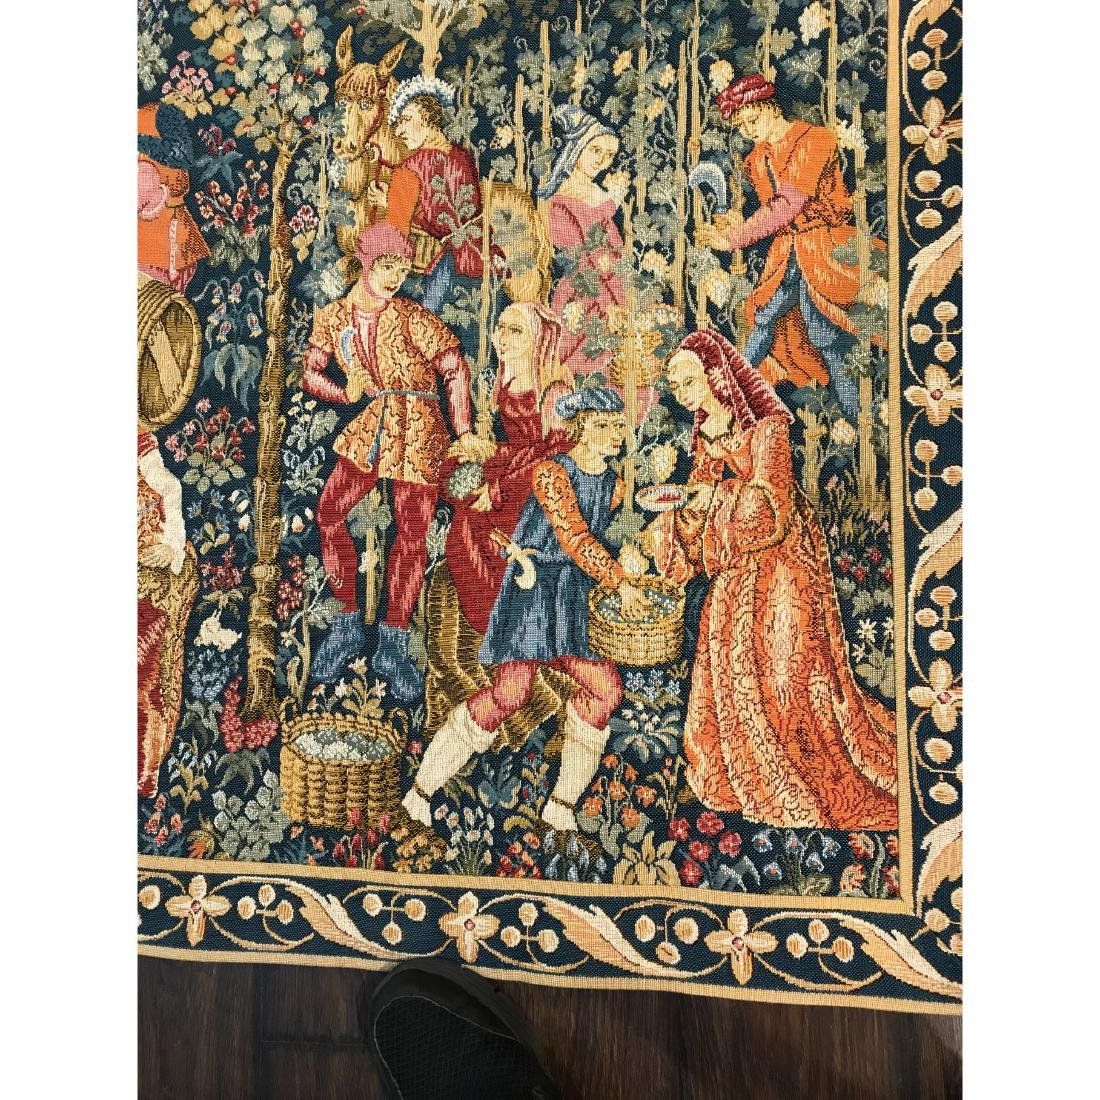 Tapestry with Scene of Medieval Wine Making w/ Rod - 6